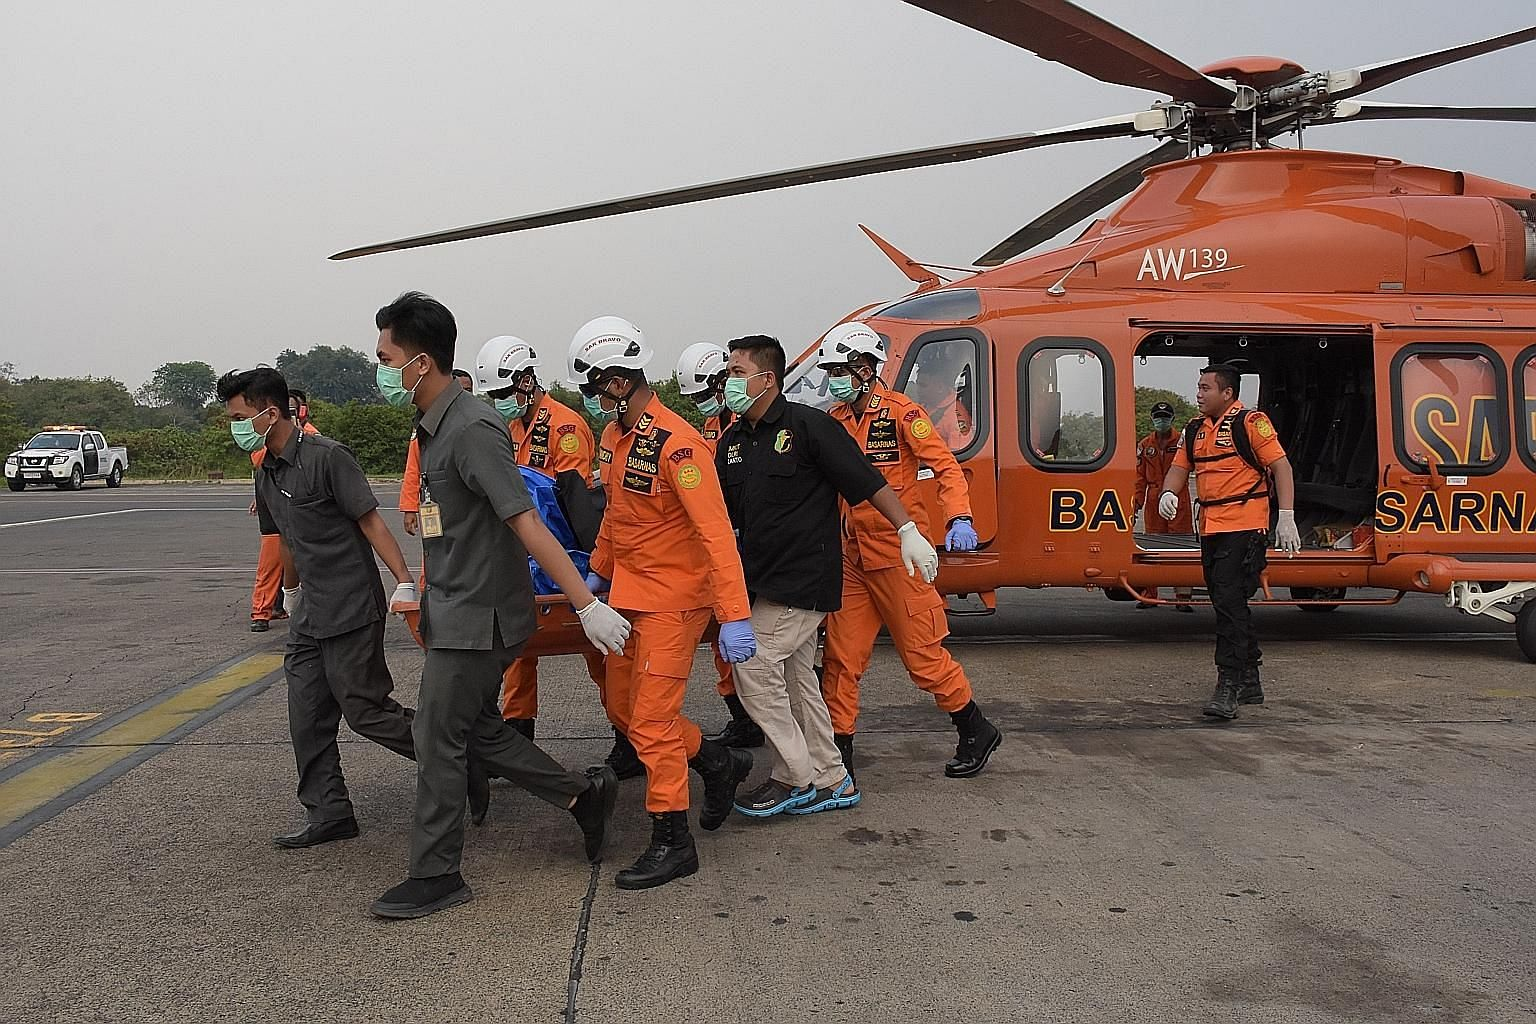 Rescue workers with the body of one of the three divers who went missing last Sunday at an airport in Jakarta yesterday. Fishermen had earlier found the body in waters near Lampung province.